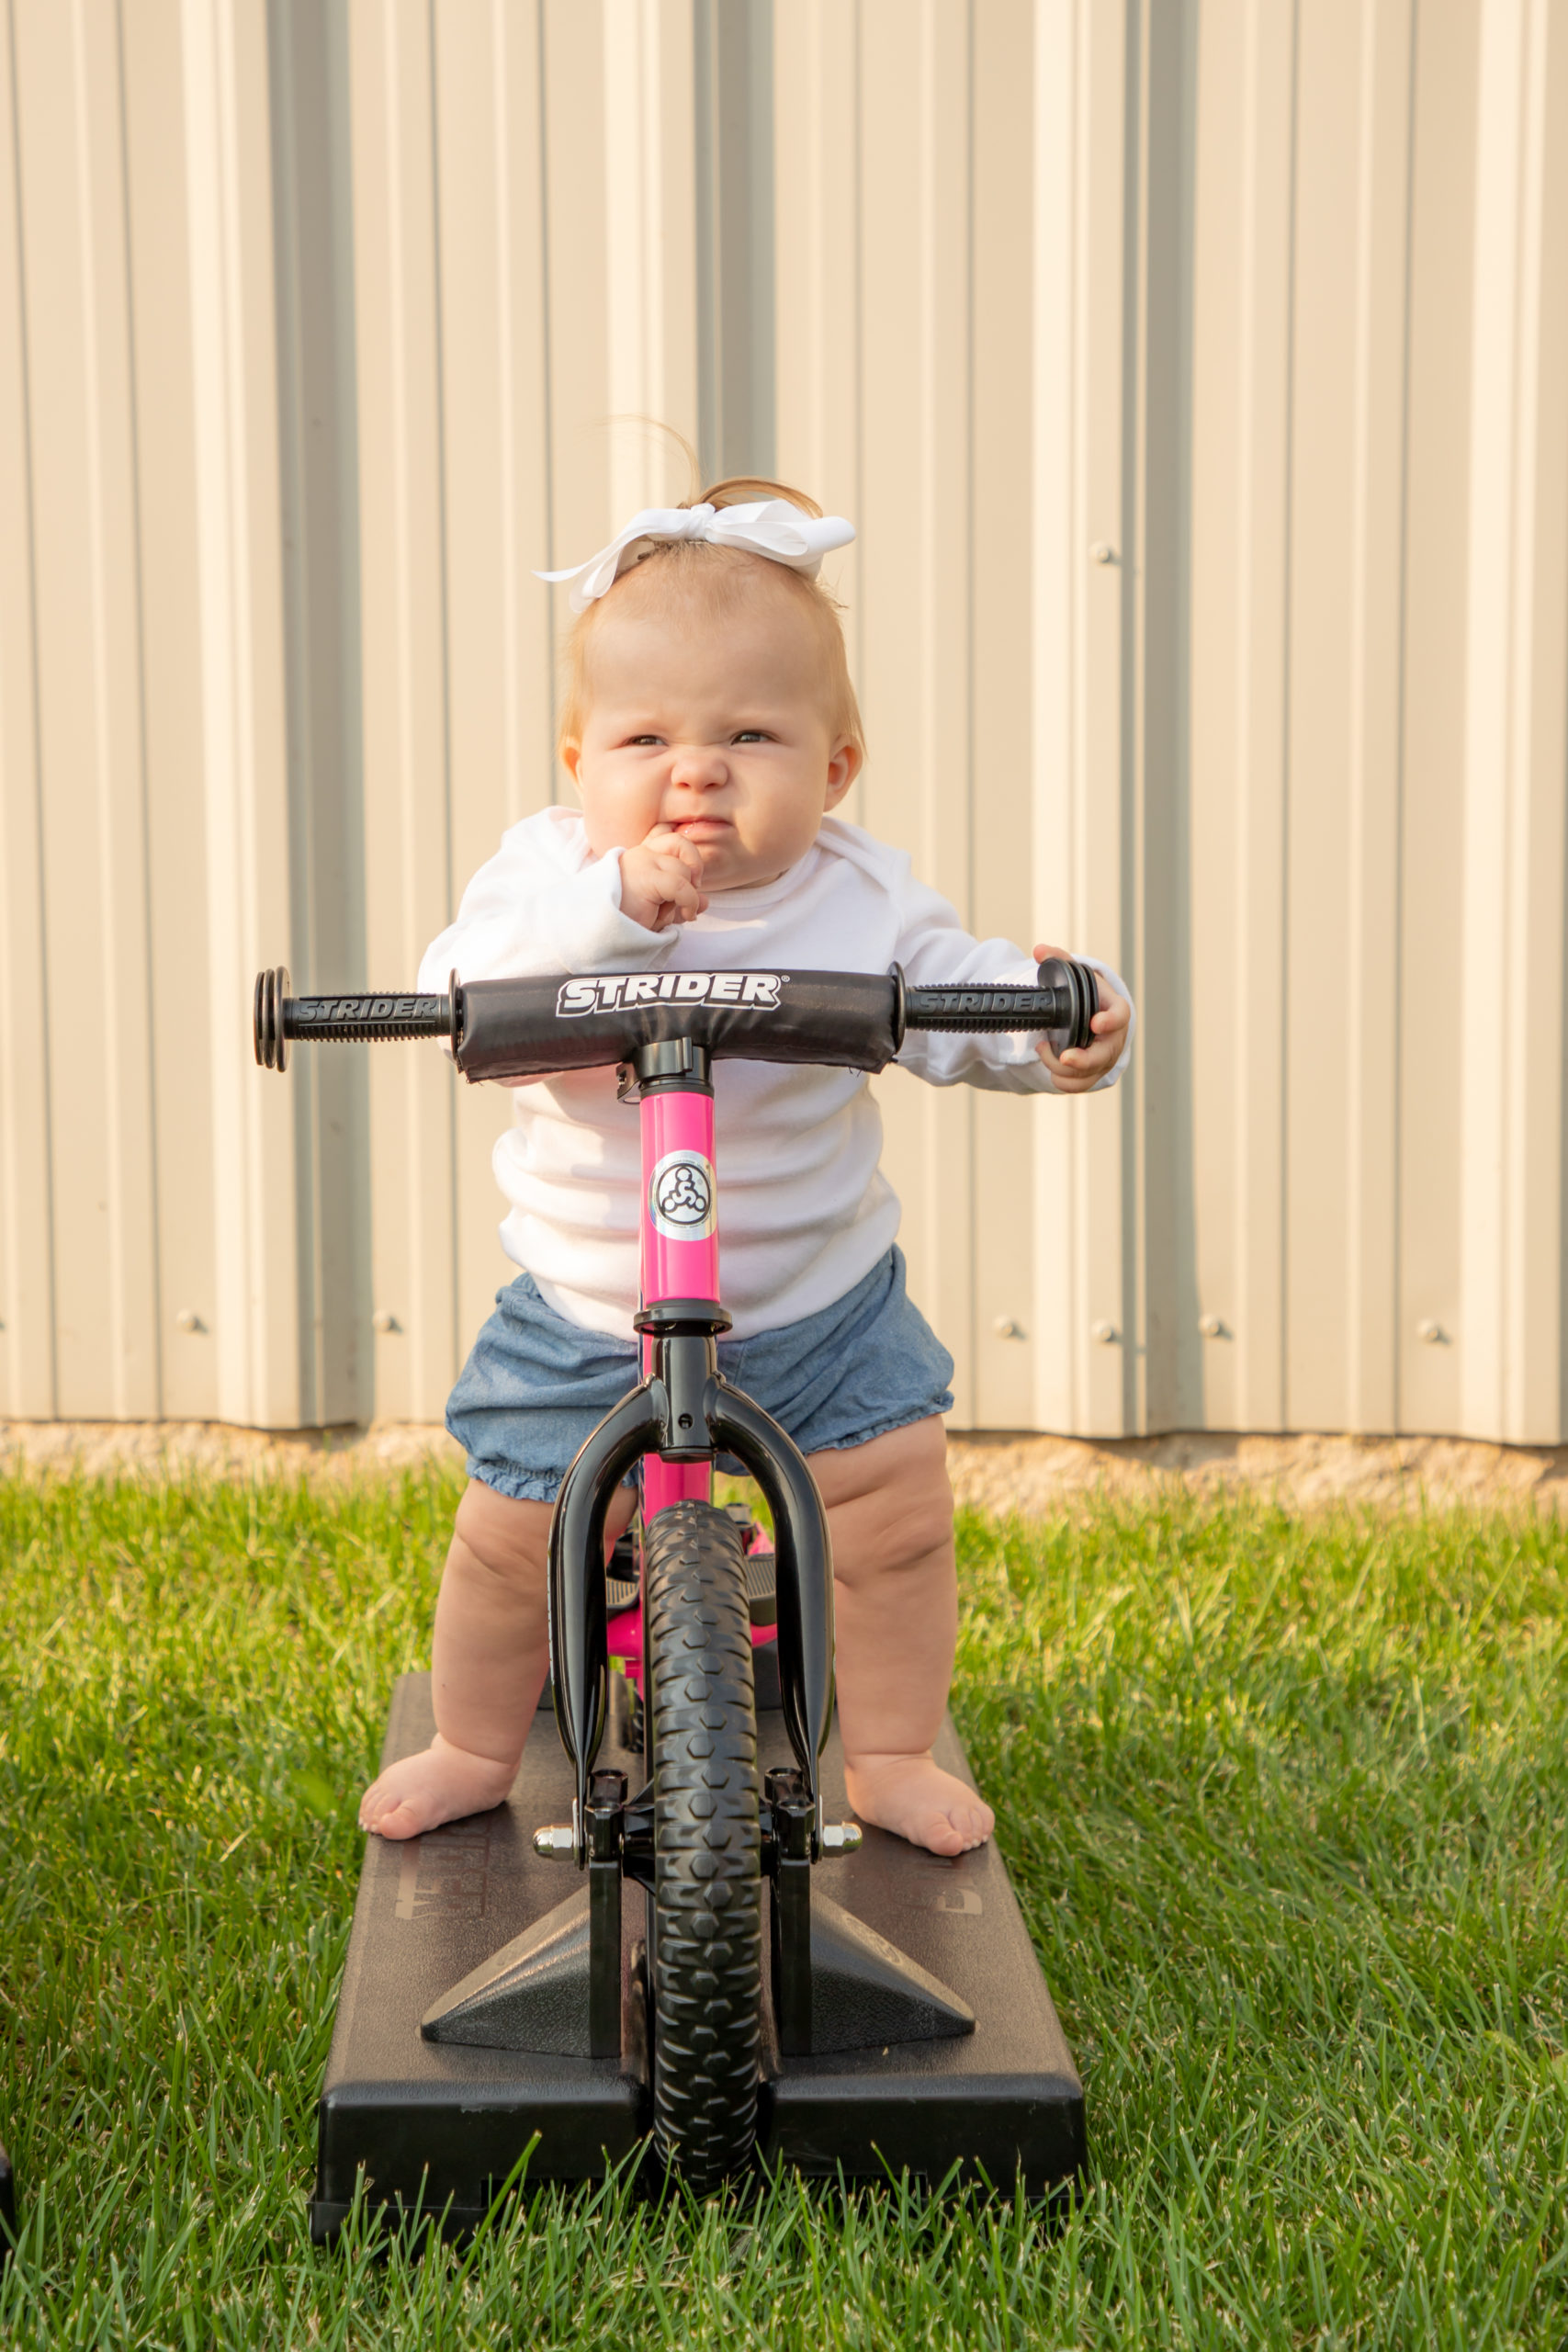 Little baby girl with scrunched face on pink 12 Sport 2-in-1 Rocking Bike